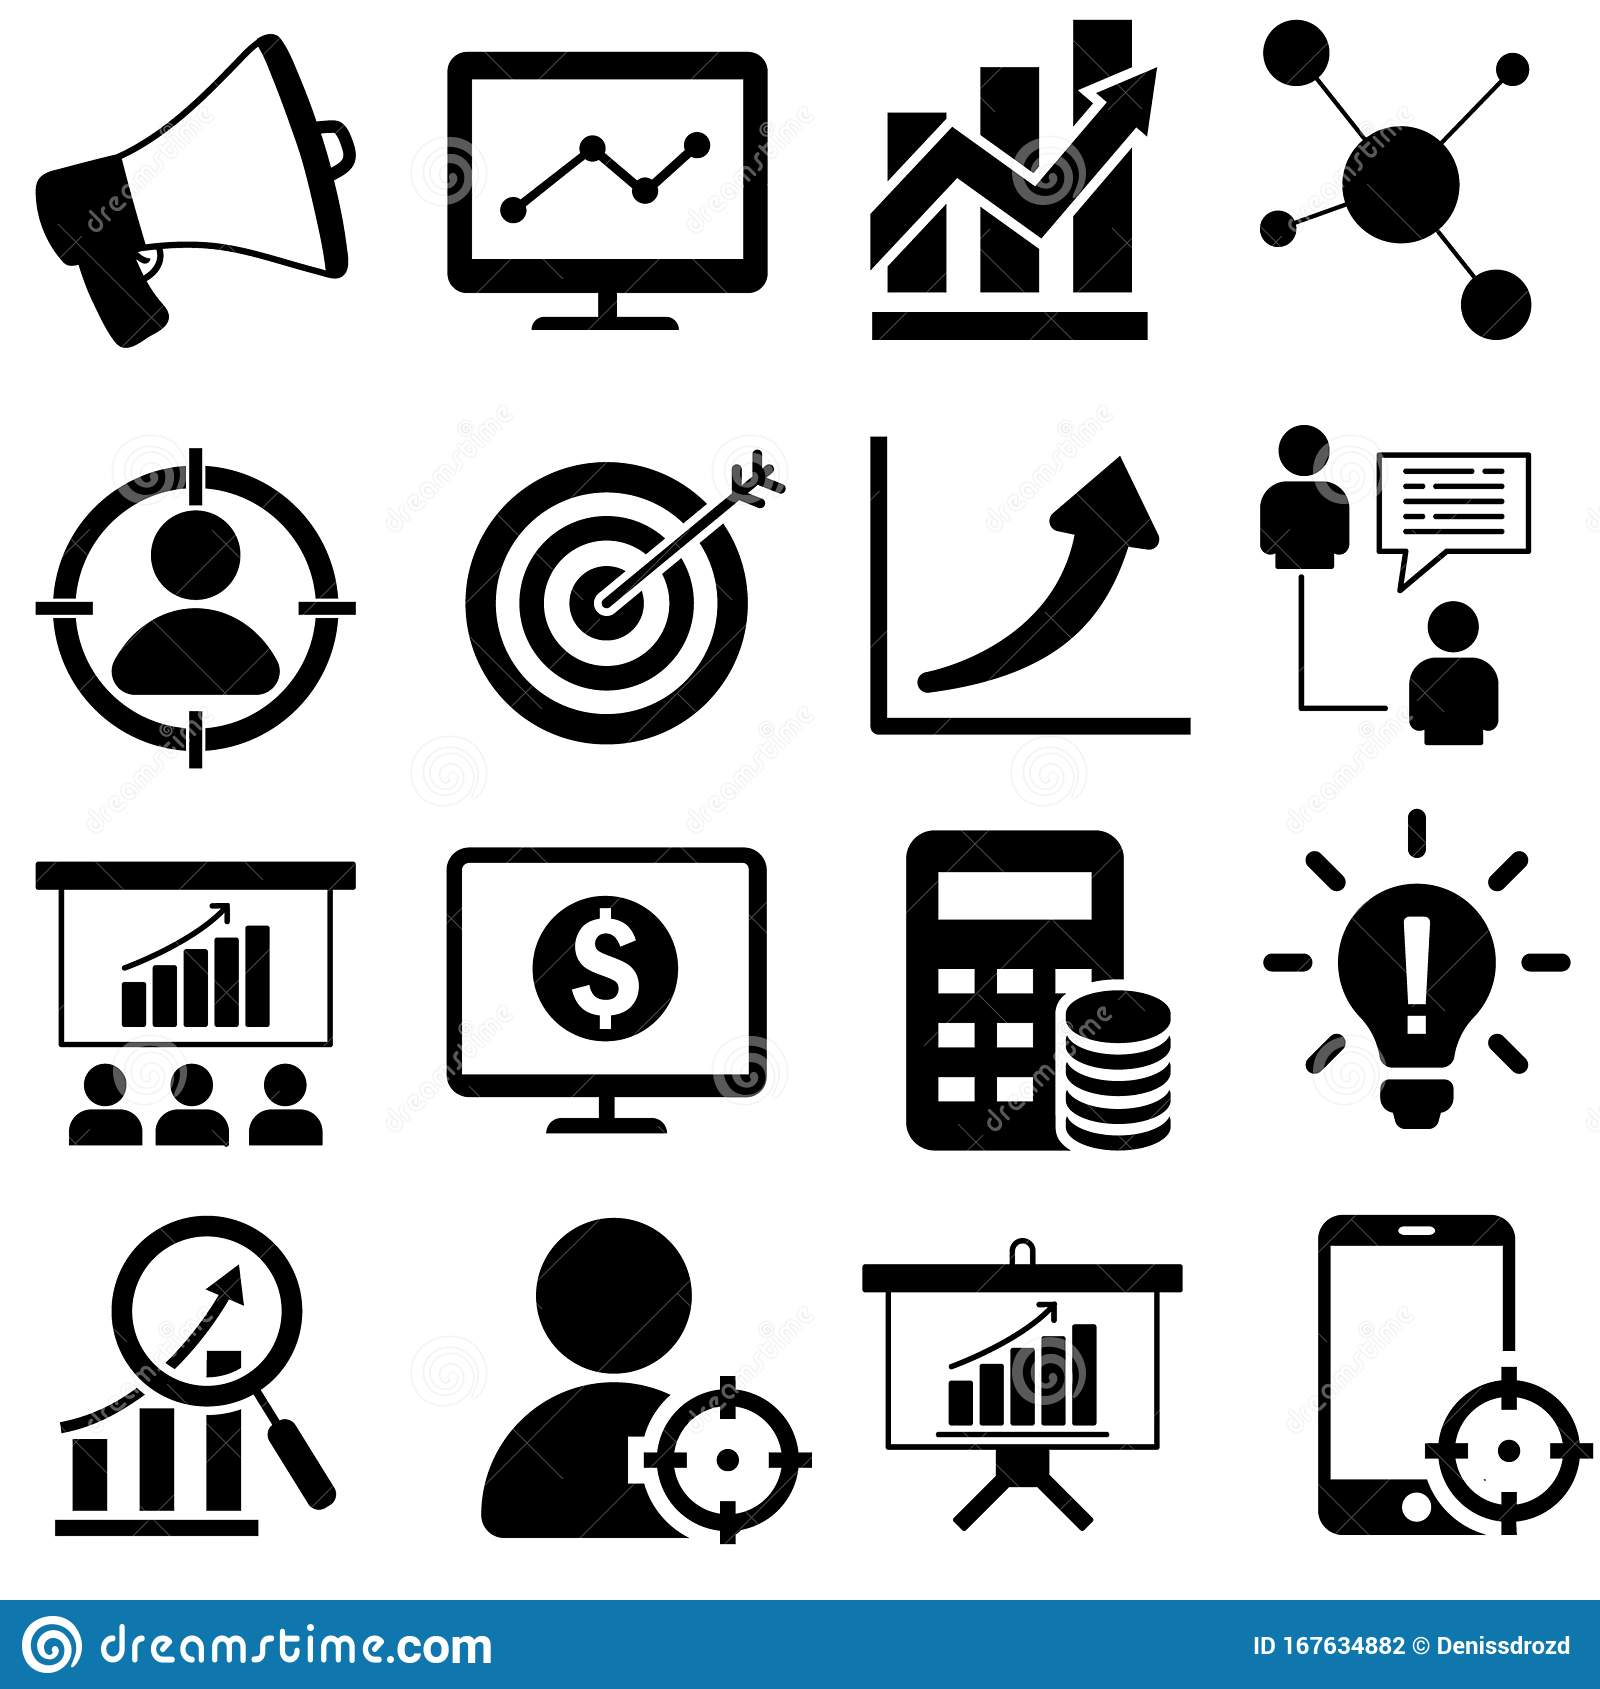 digital marketing icons vector set analytics illustration symbol collection analyzing sign or logo stock illustration illustration of browser digital 167634882 https www dreamstime com digital marketing icons vector set analytics illustration symbol collection analyzing sign logo digital marketing icons vector image167634882